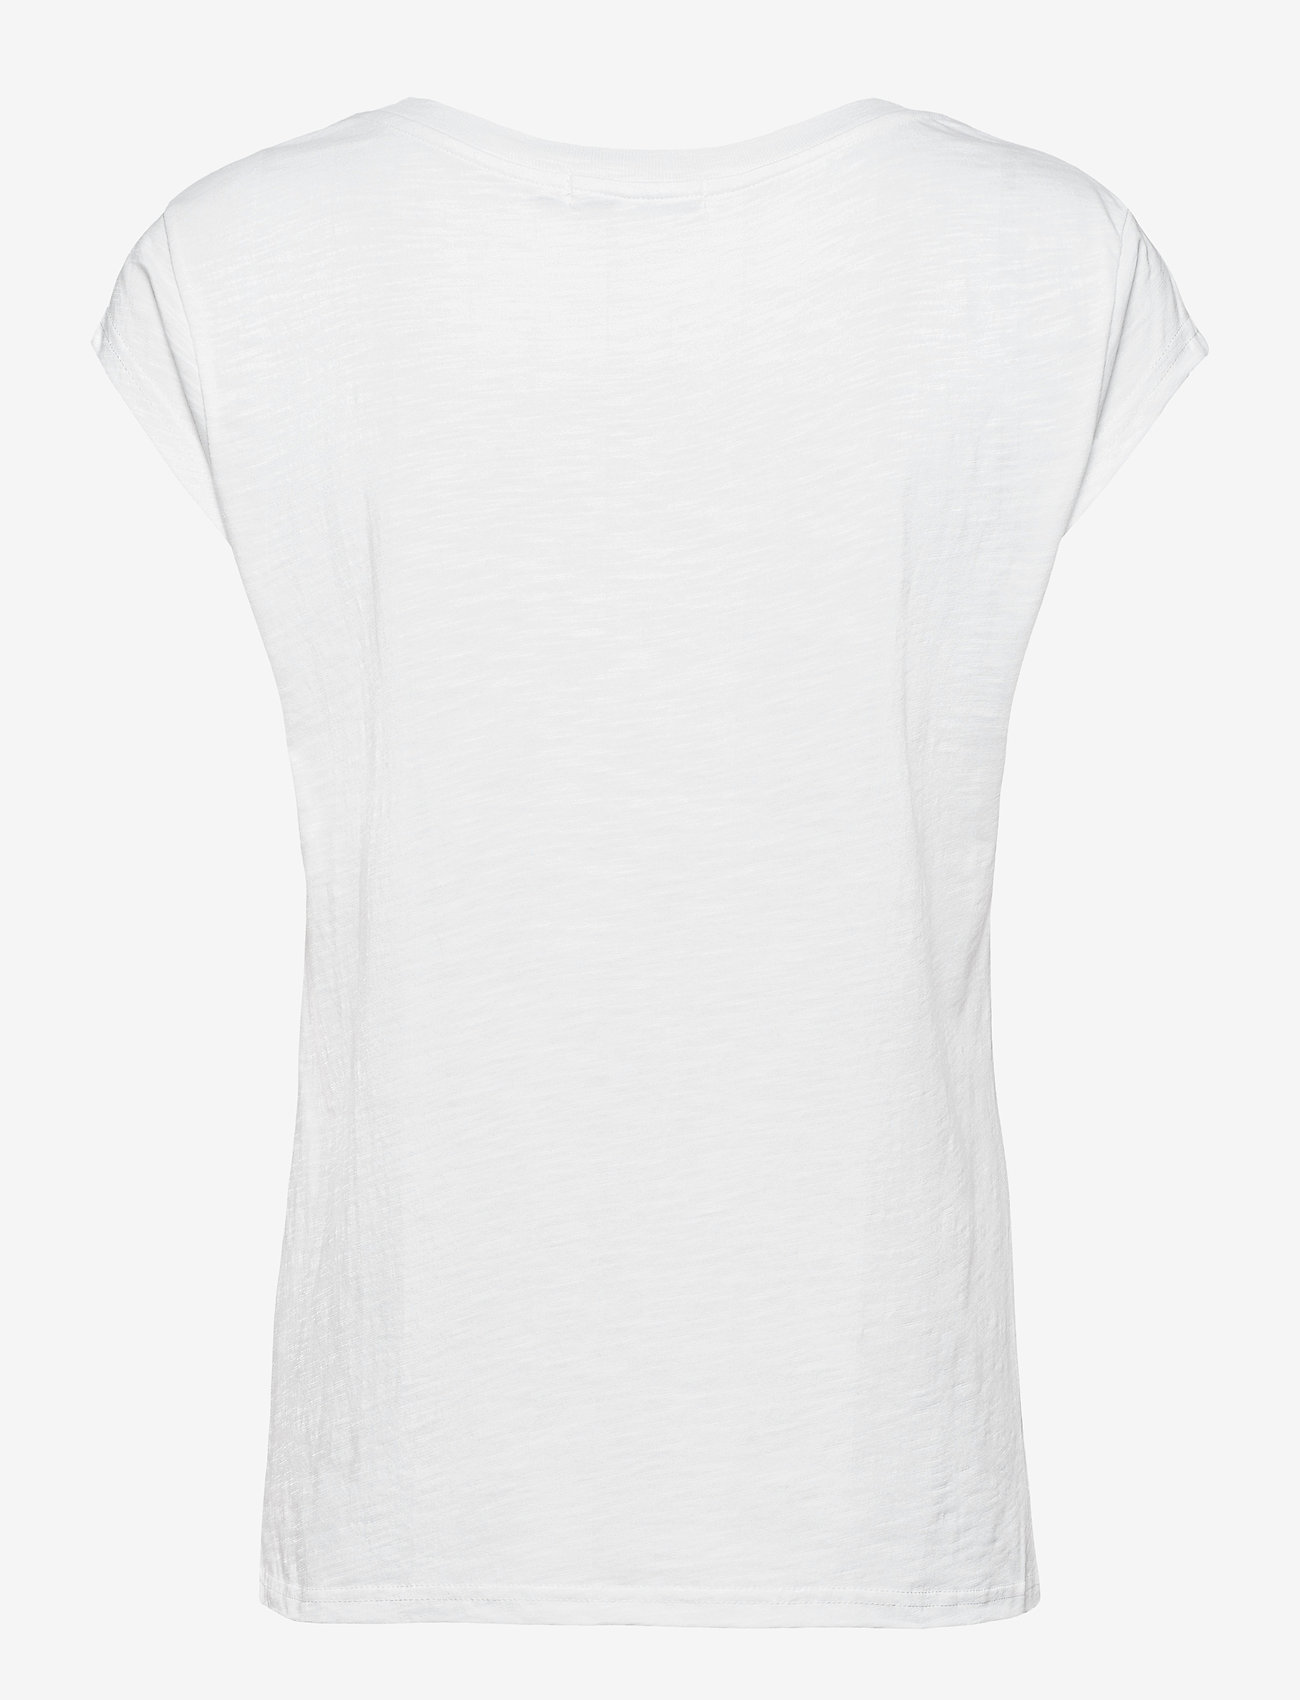 Coster Copenhagen - T-shirt with print and text in floc - t-shirts - white - 1